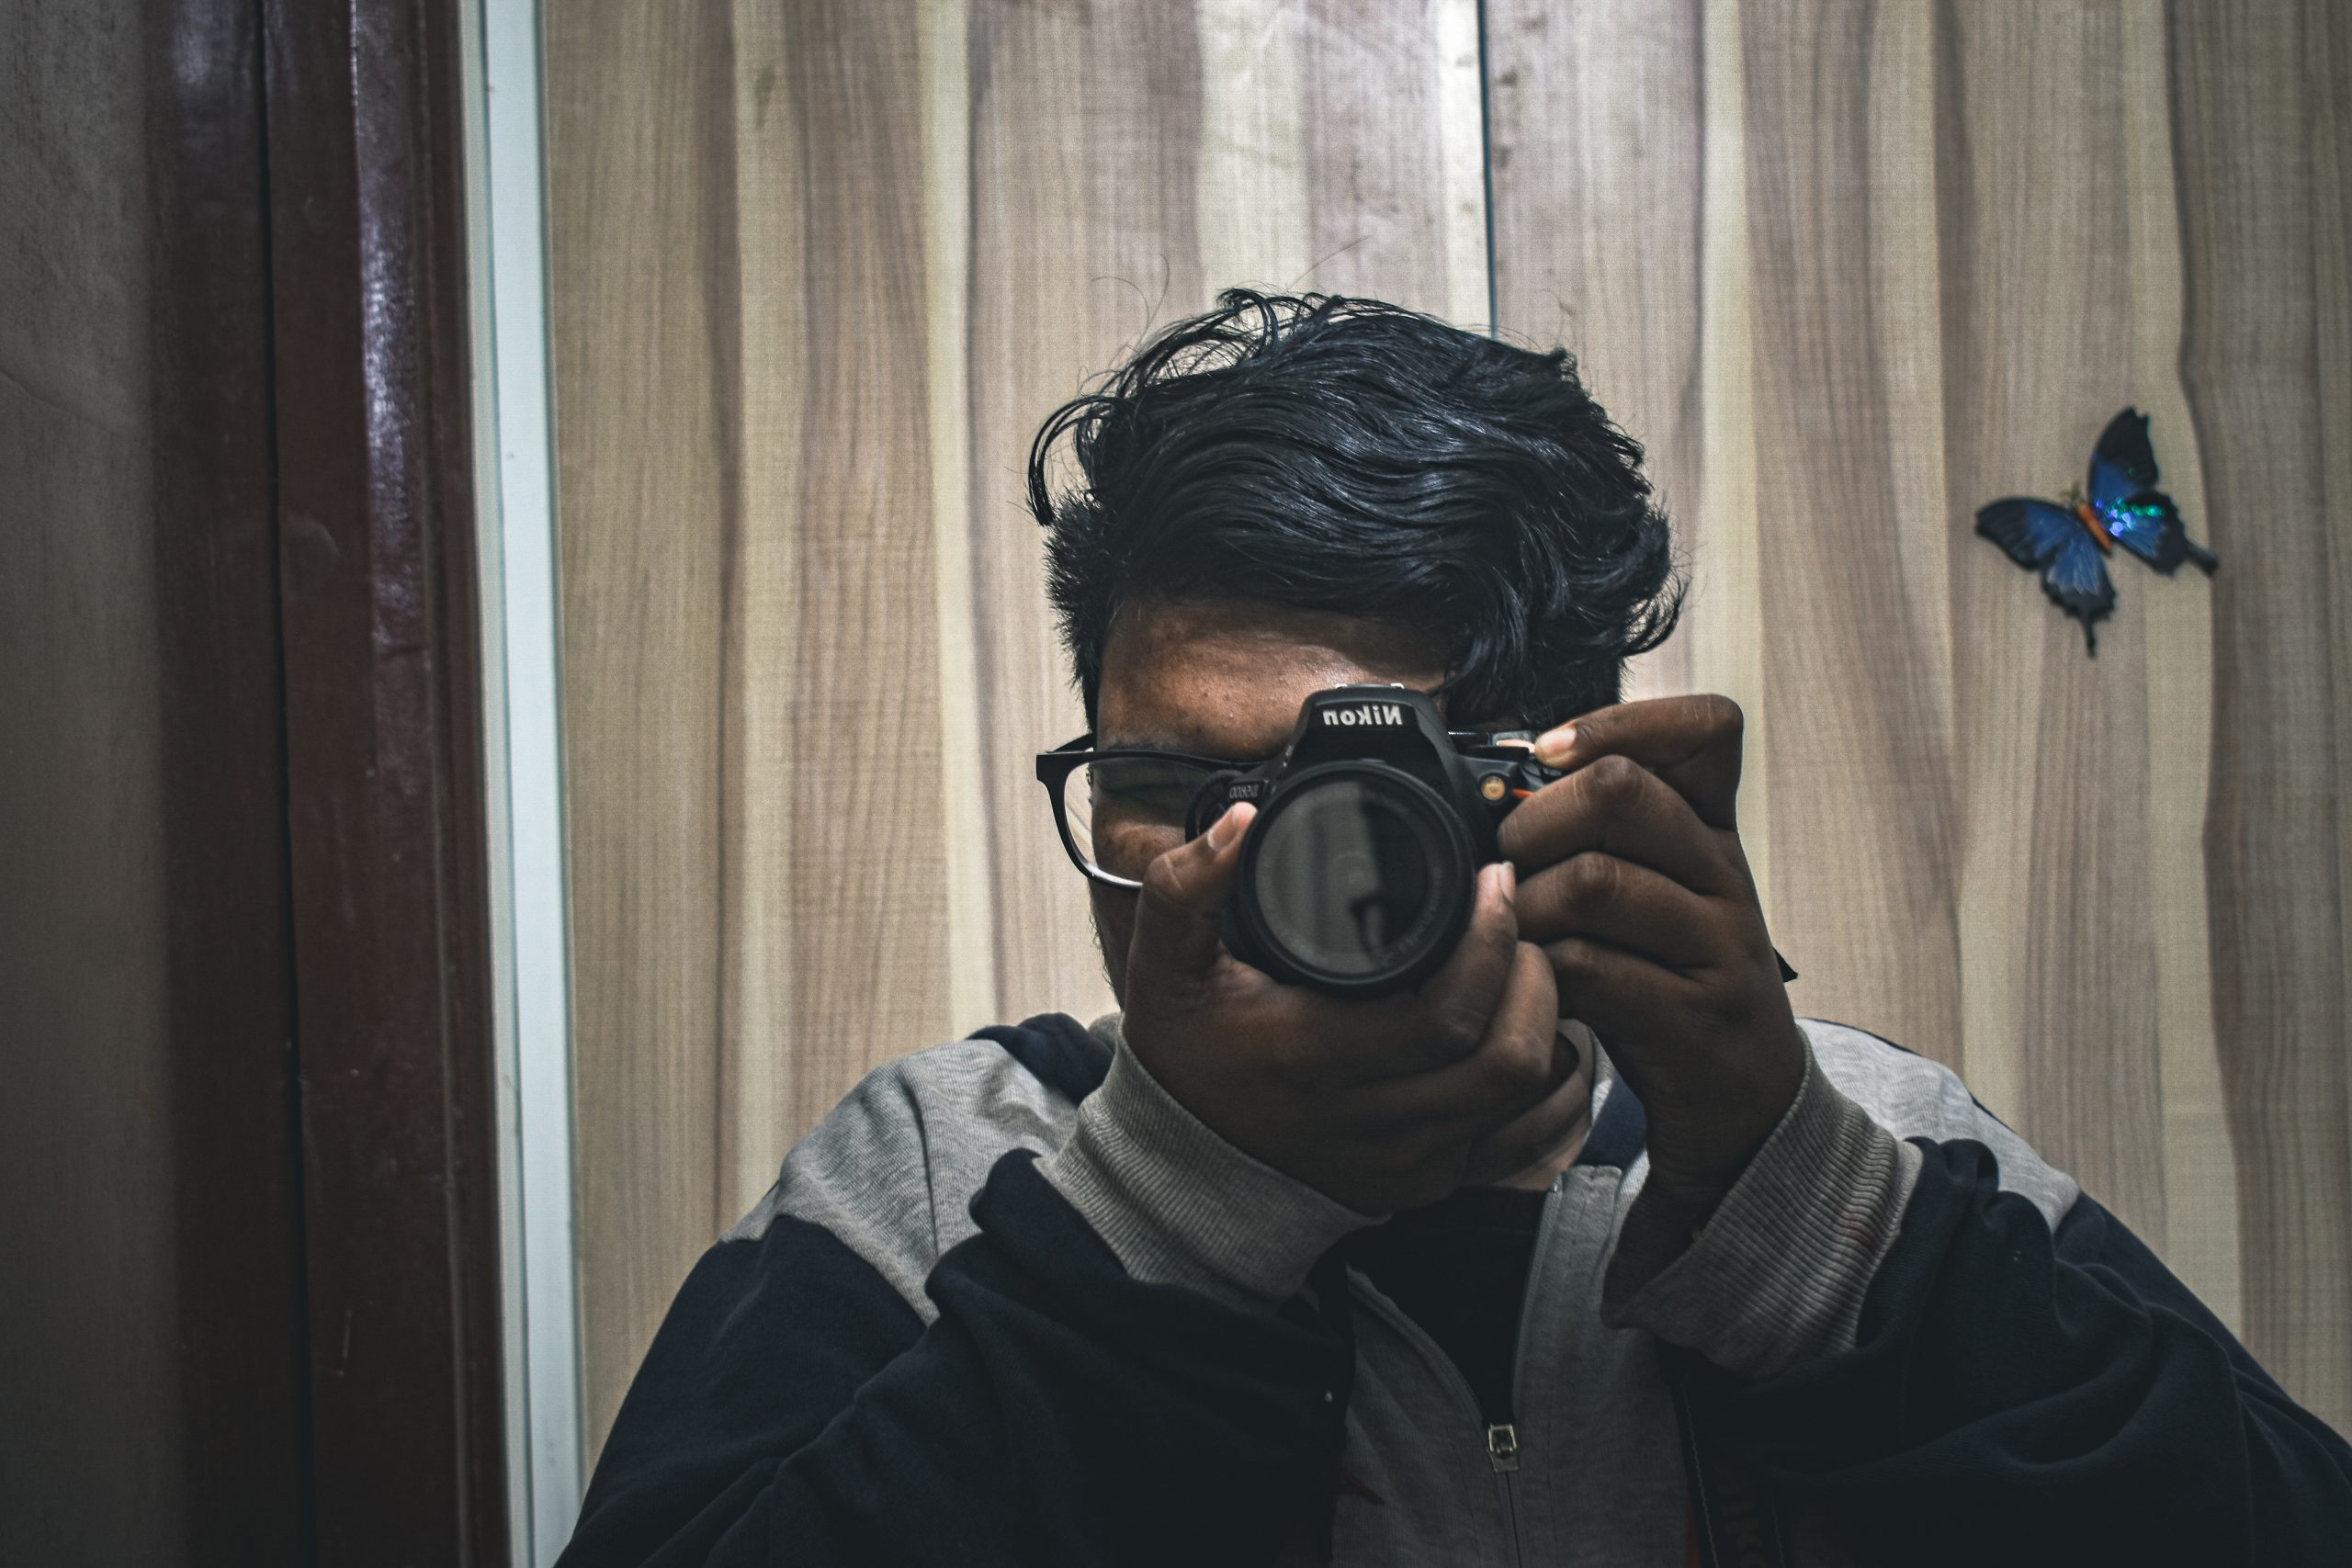 Capturing an image with DSLR Camera